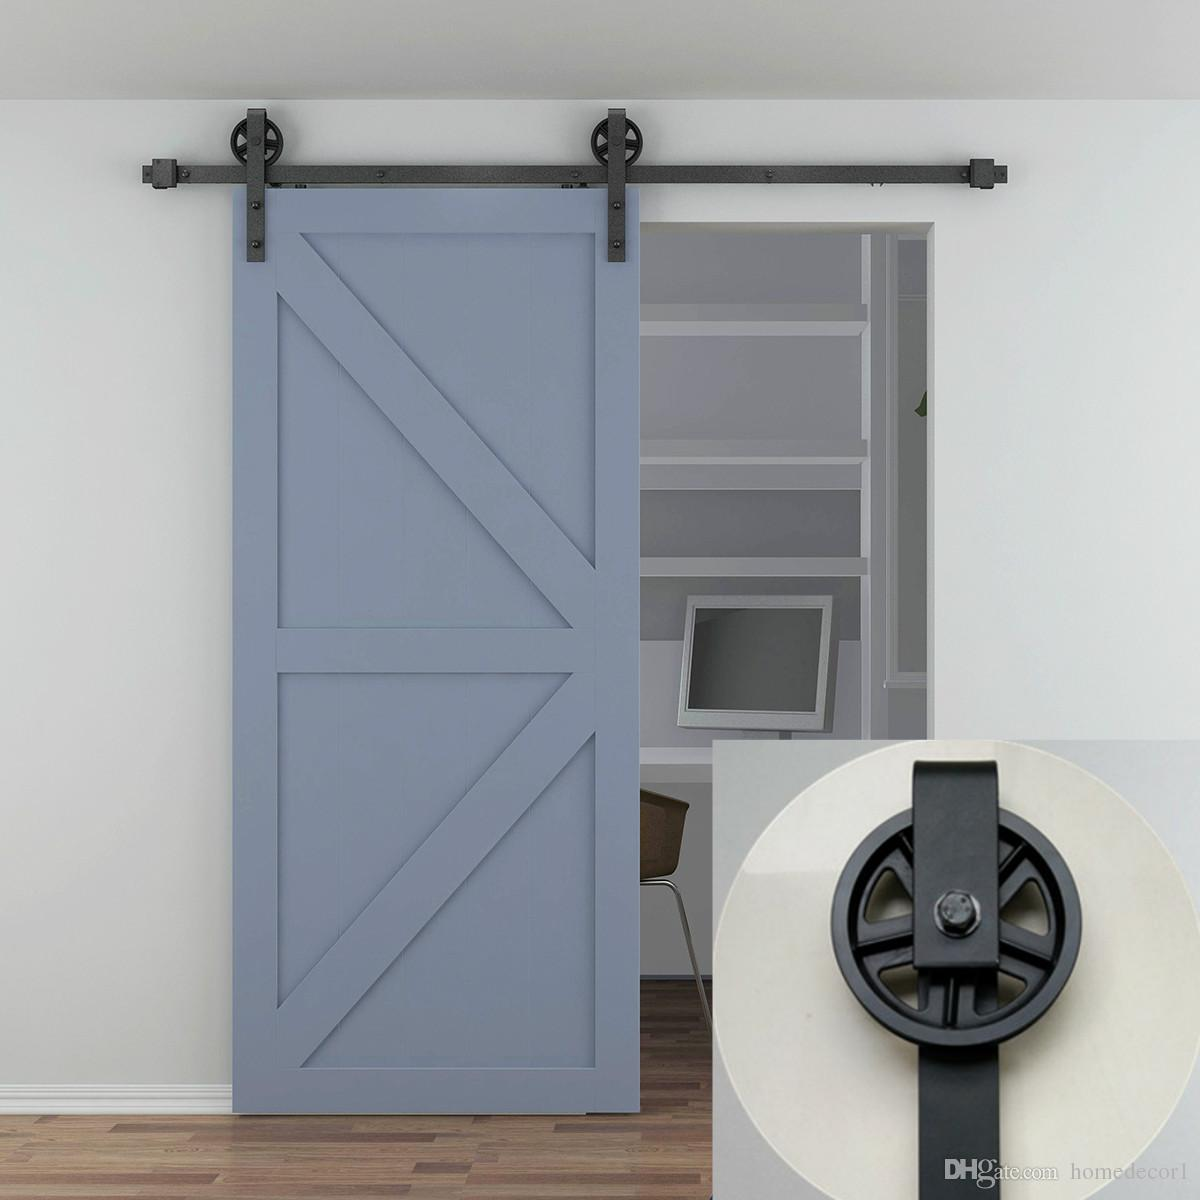 5 10ft Single Wood Door Vintage Industrial Spoked European Black